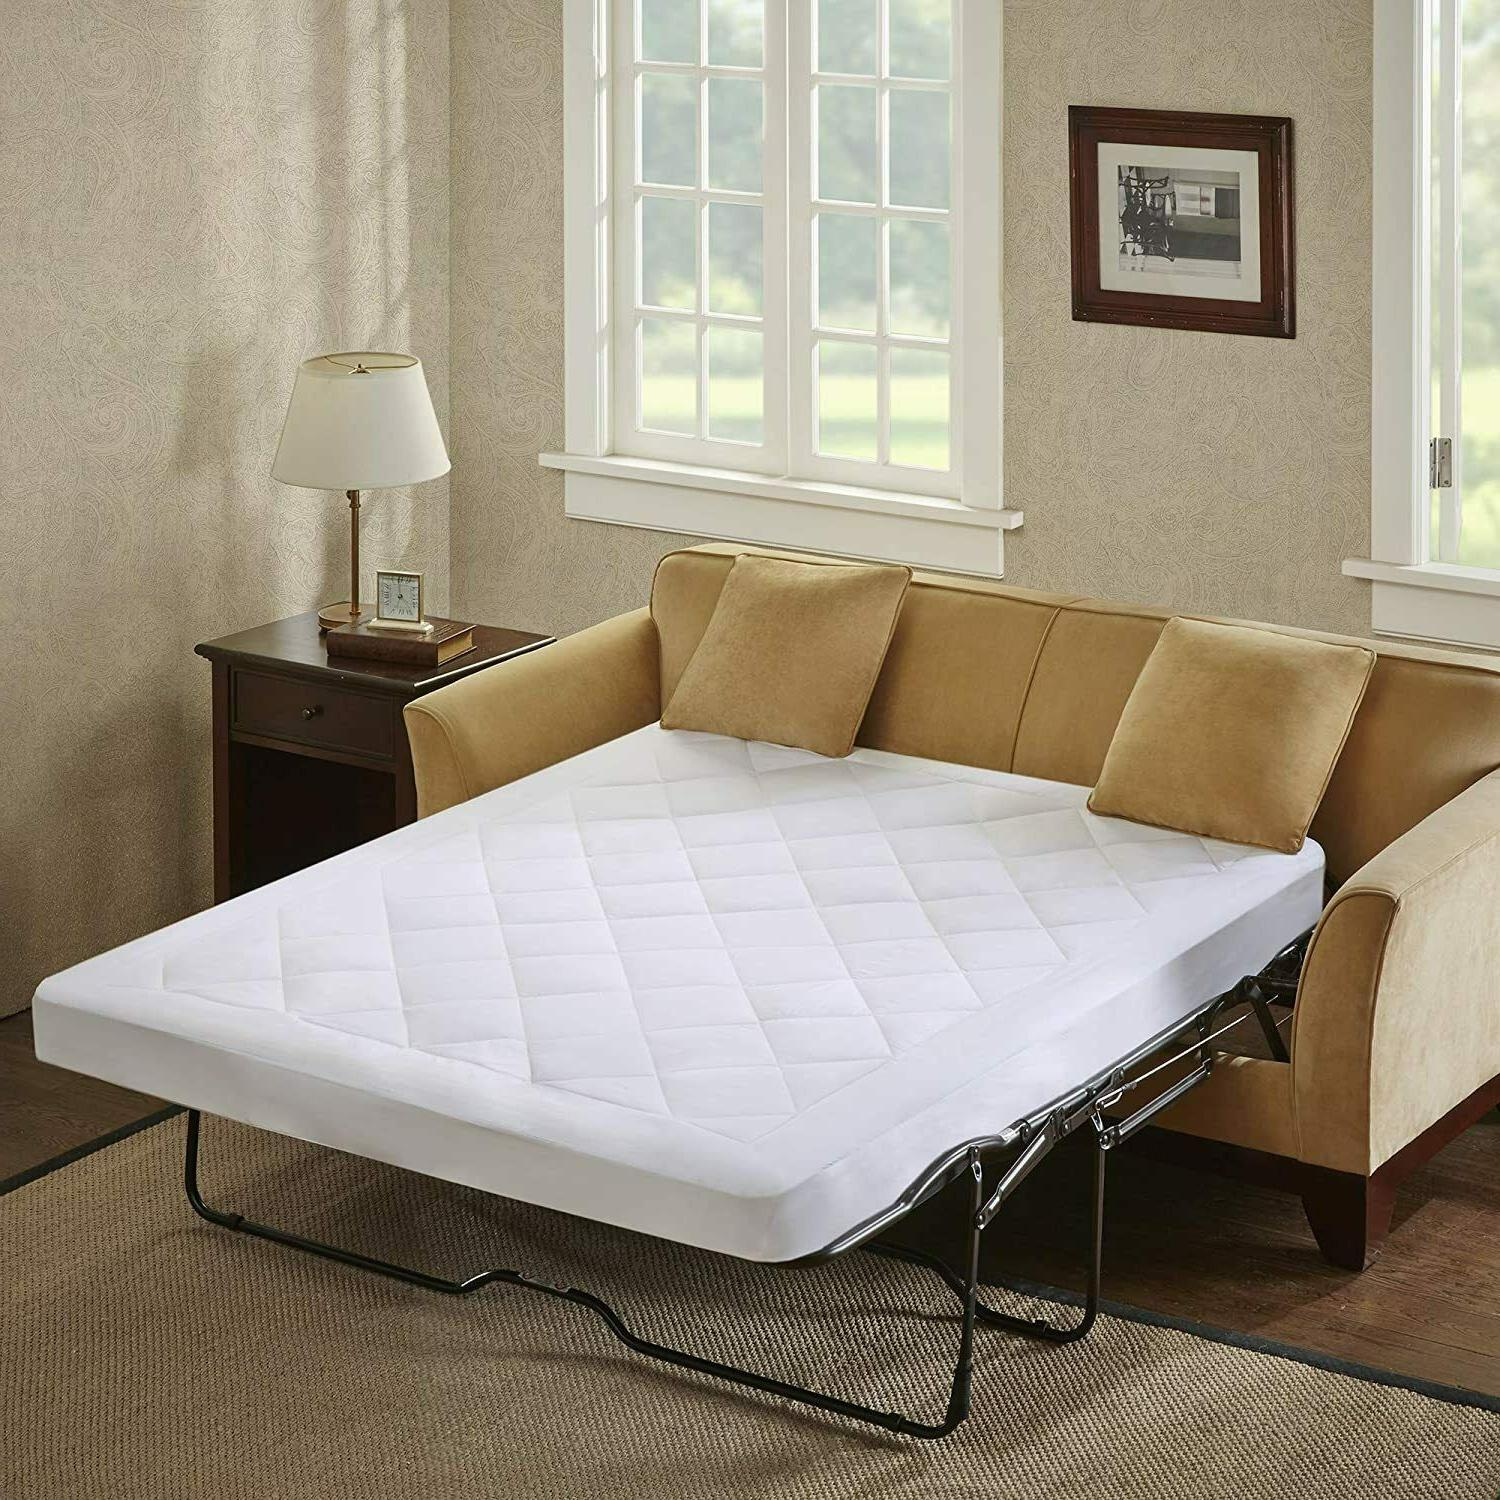 Couch Bed Sofa Living Loveseat Waterproof 54x72